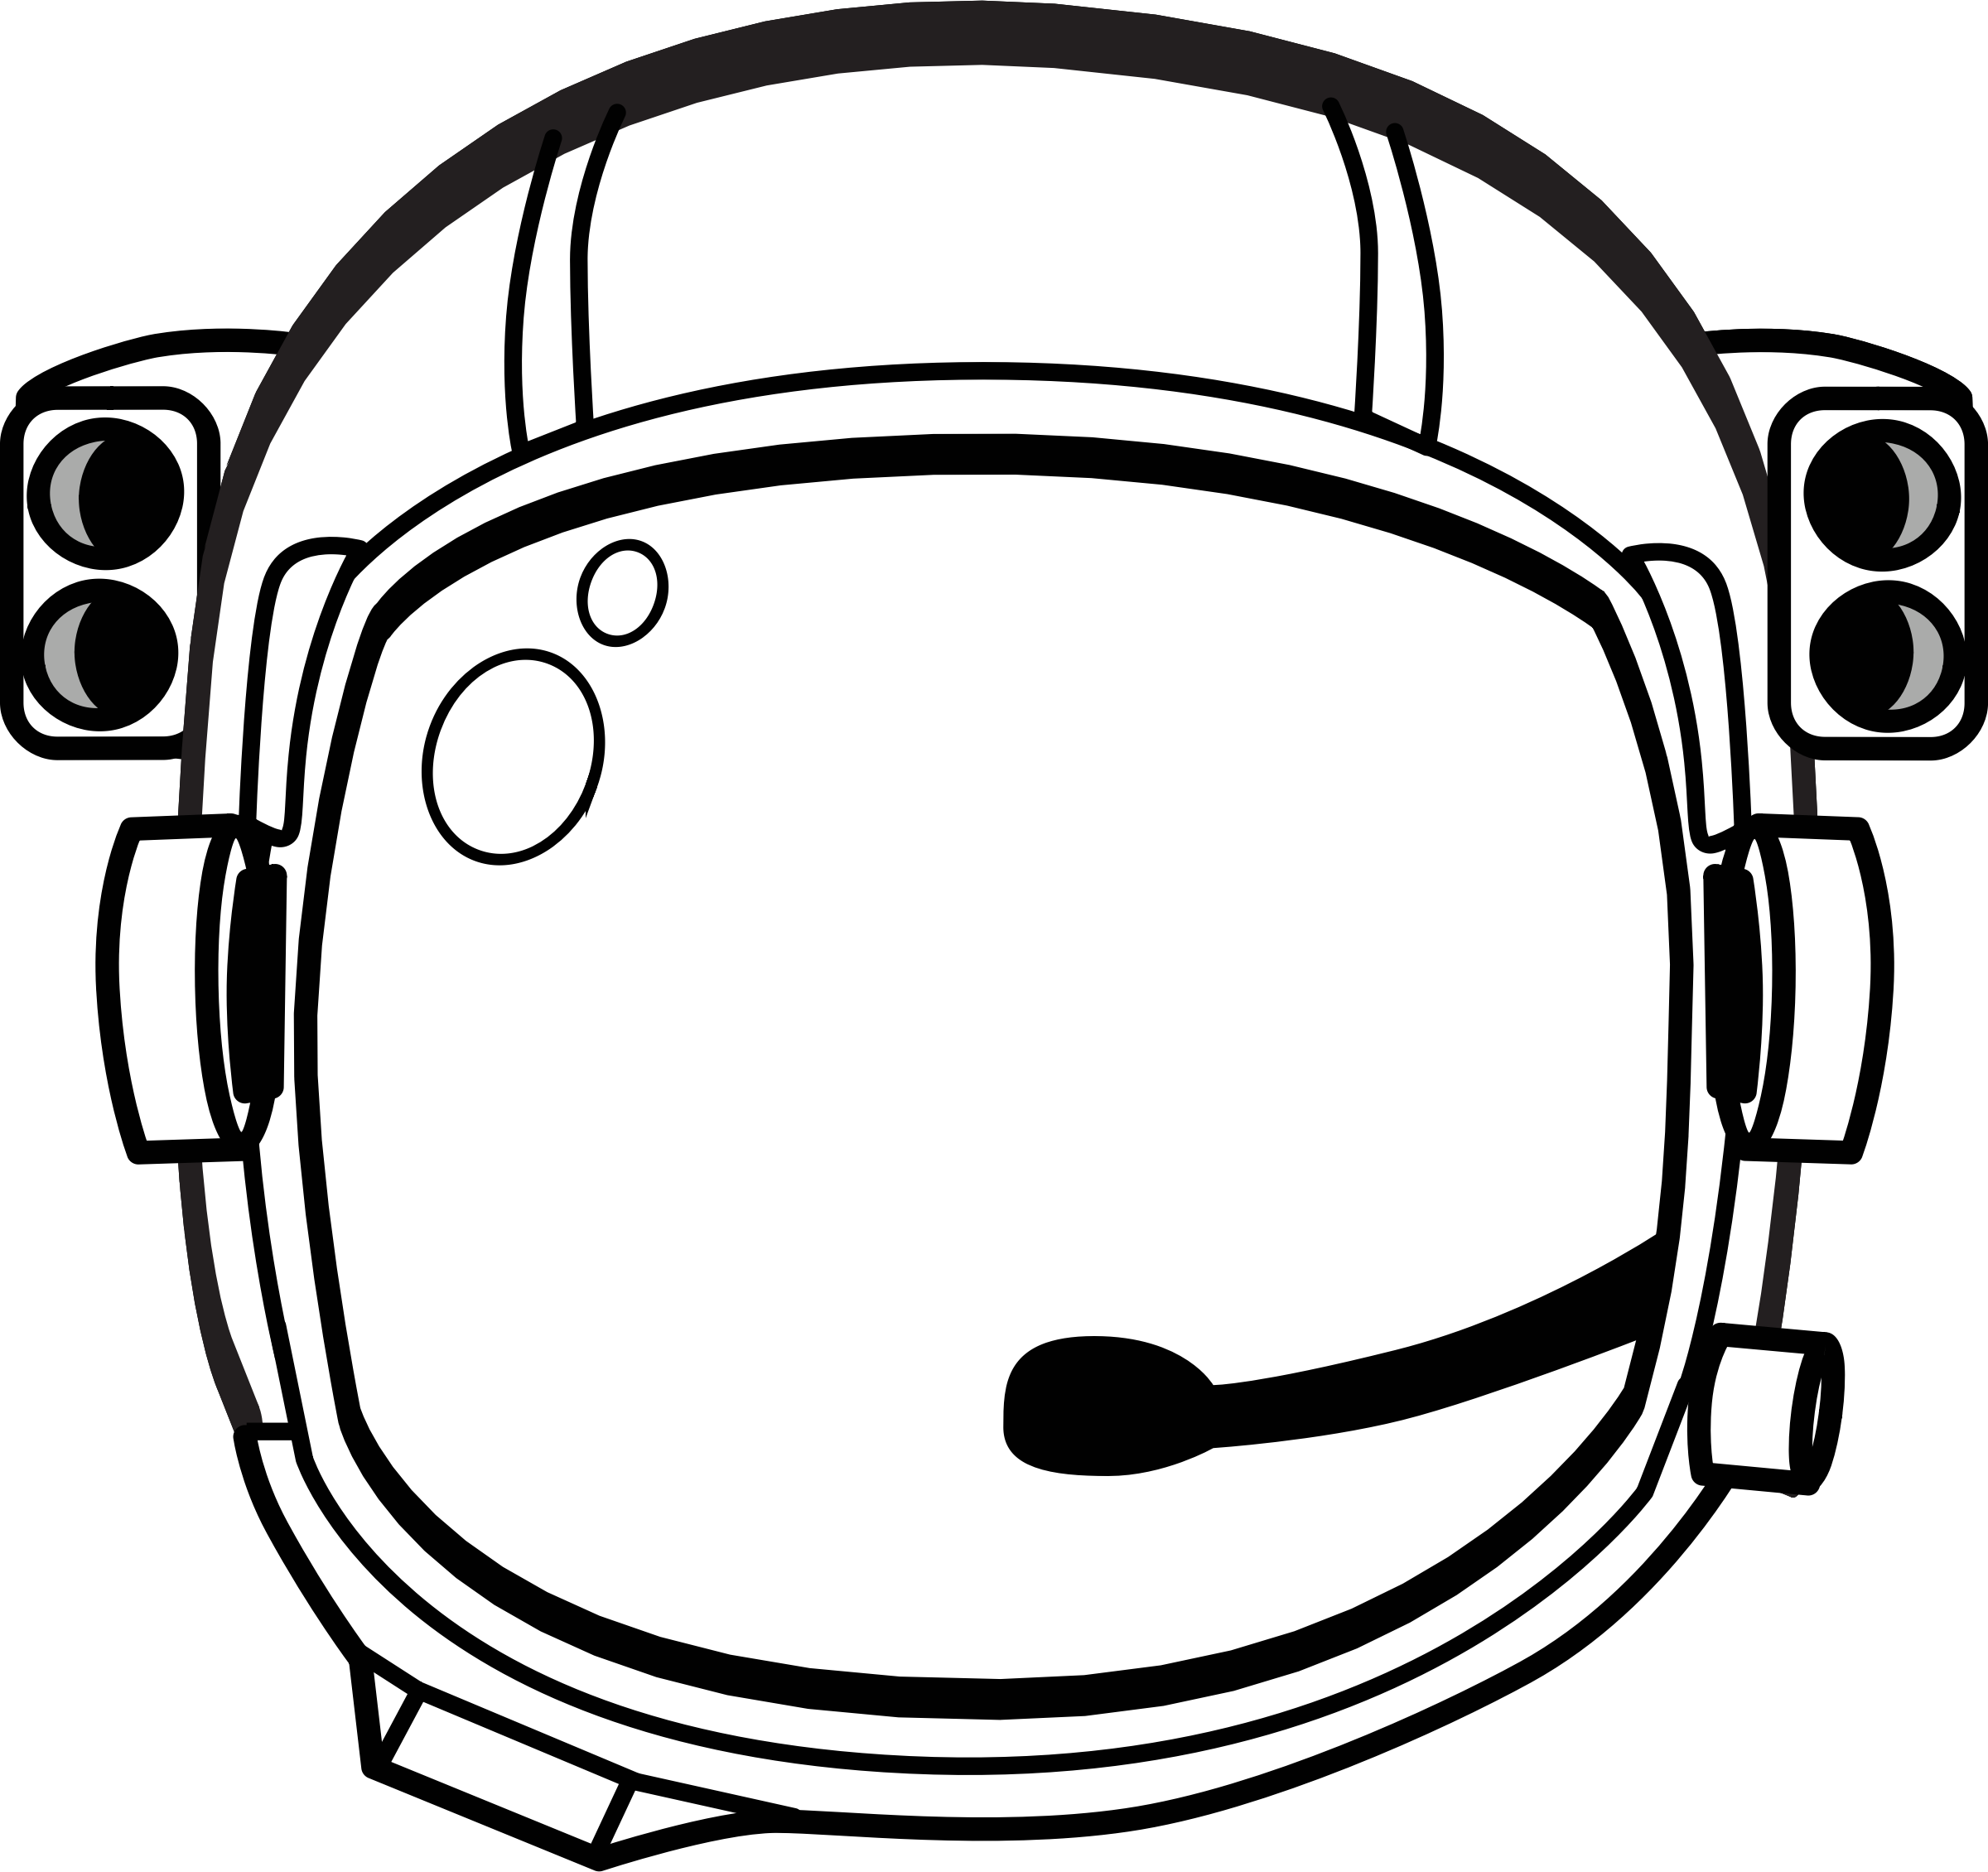 Astronaut helmet png. S icons free and